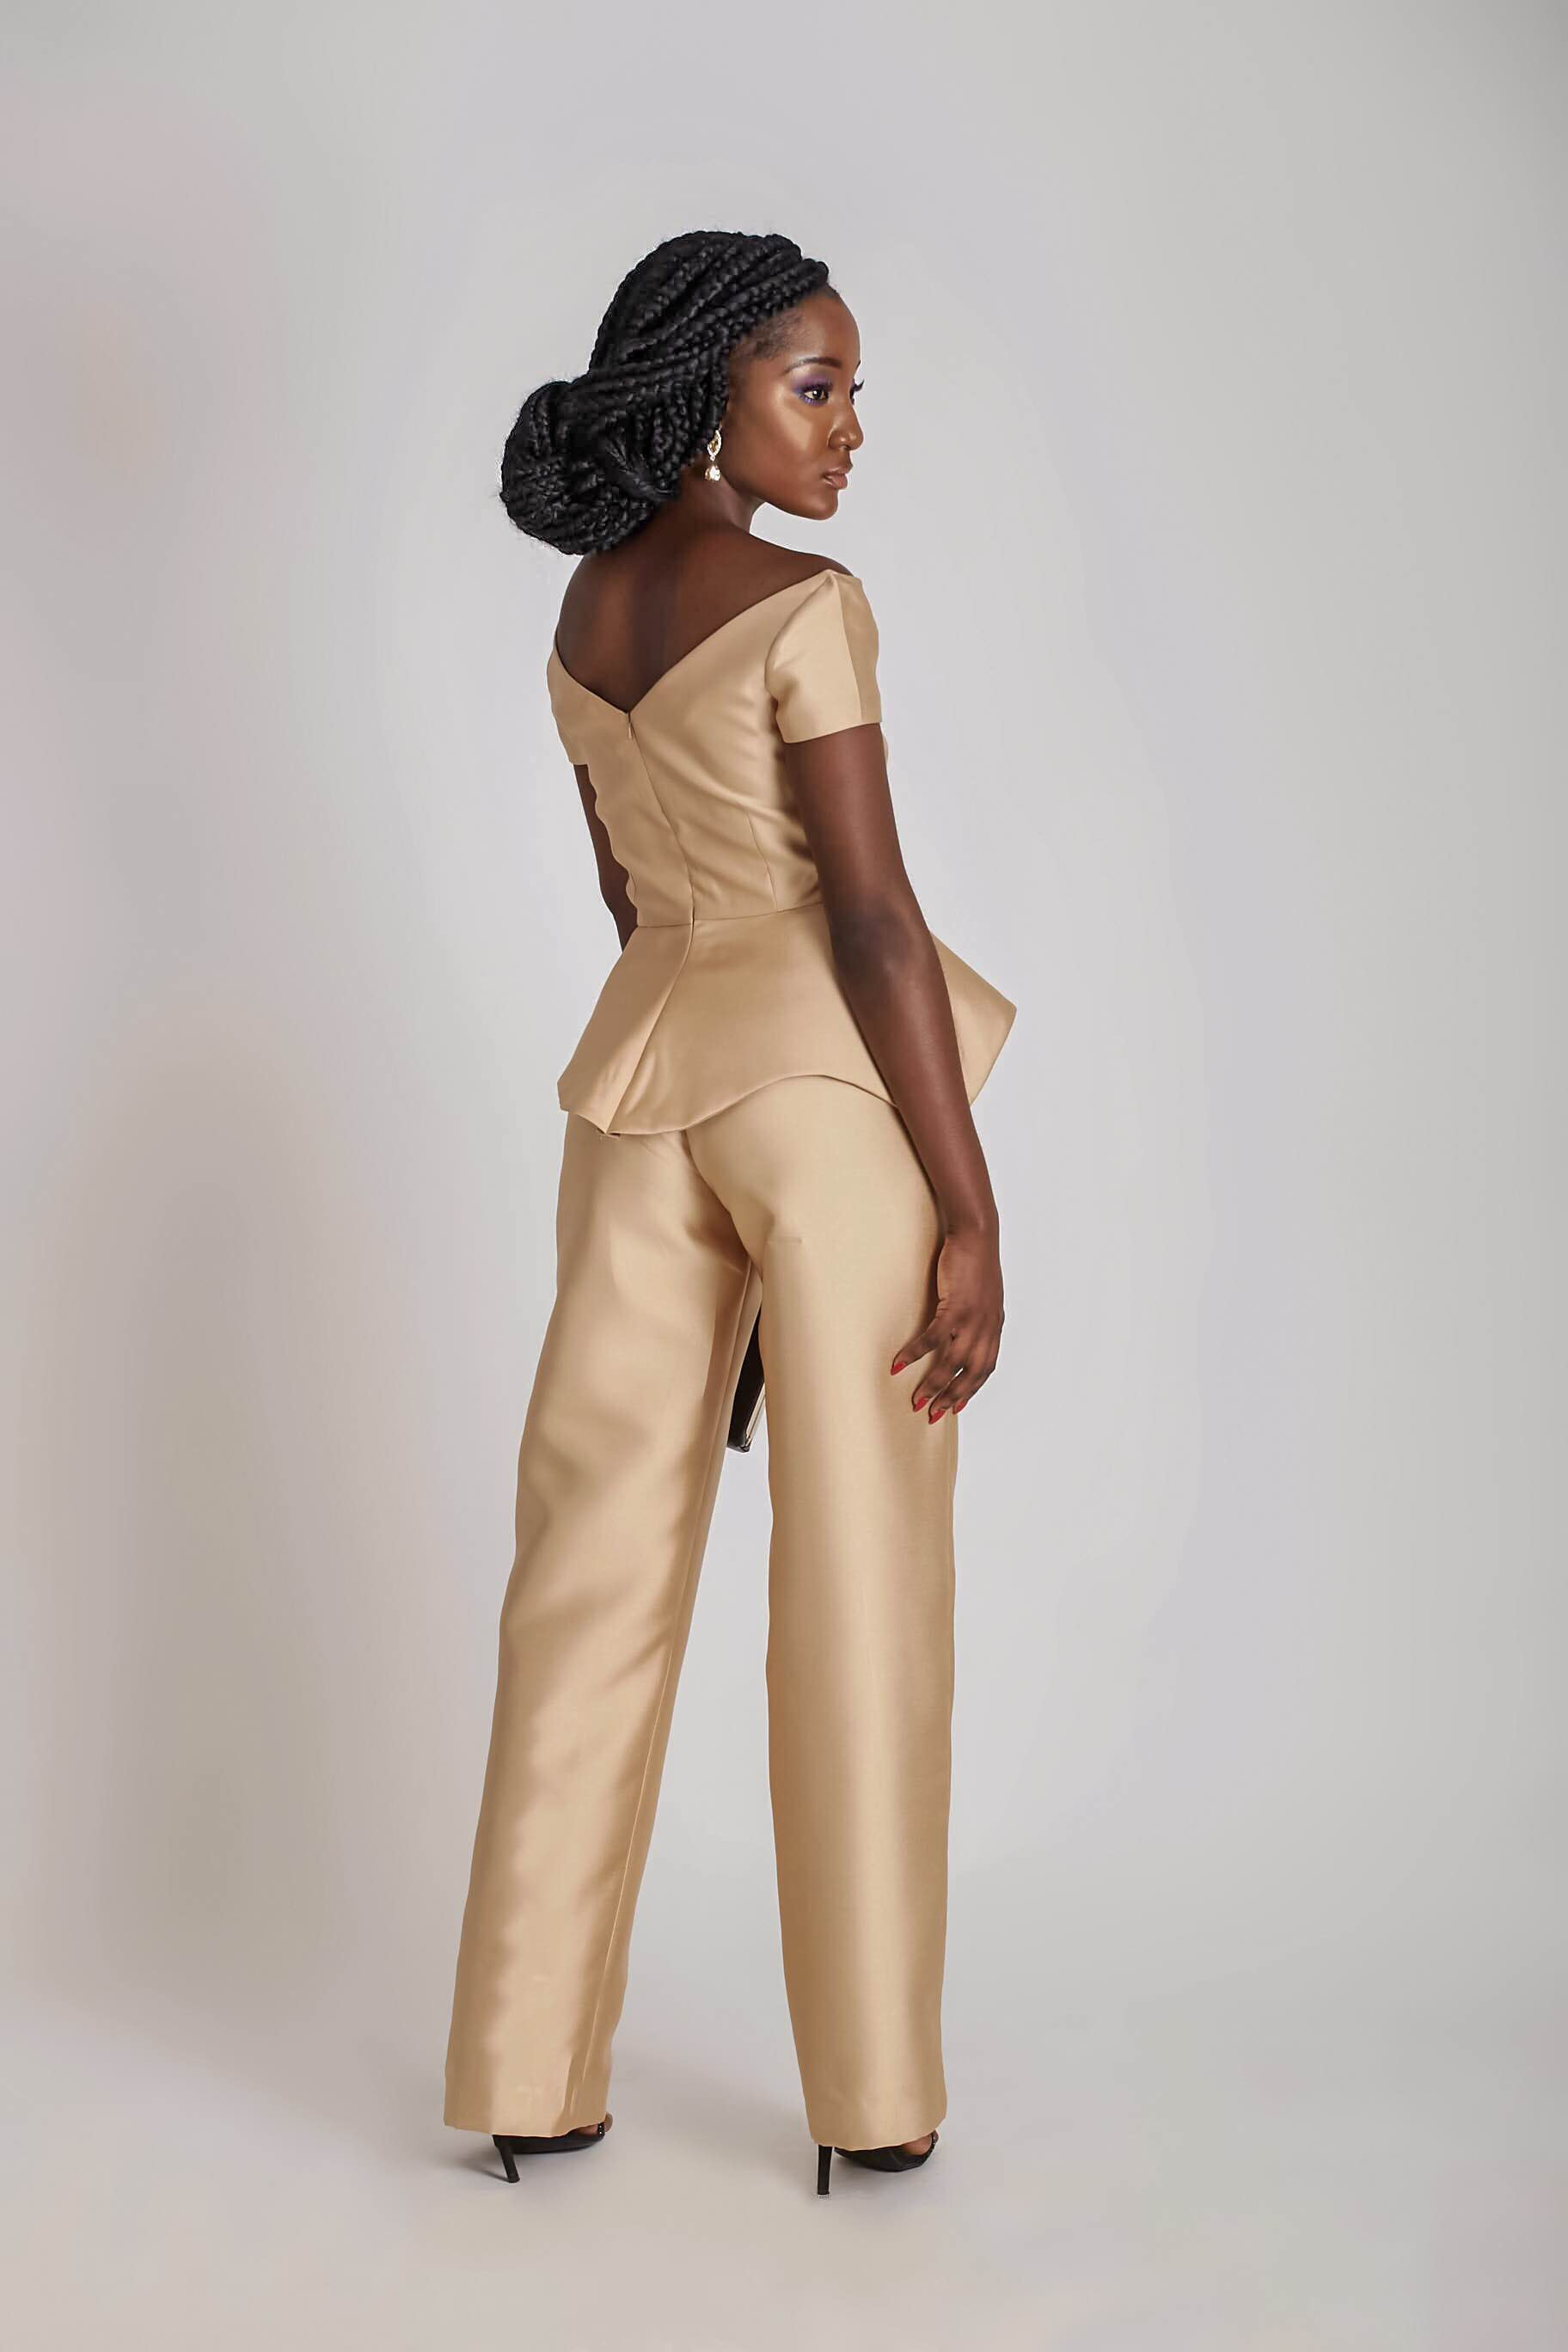 Imad Eduso - BN Style - Collection Lookbook - BellaNaija.com 017